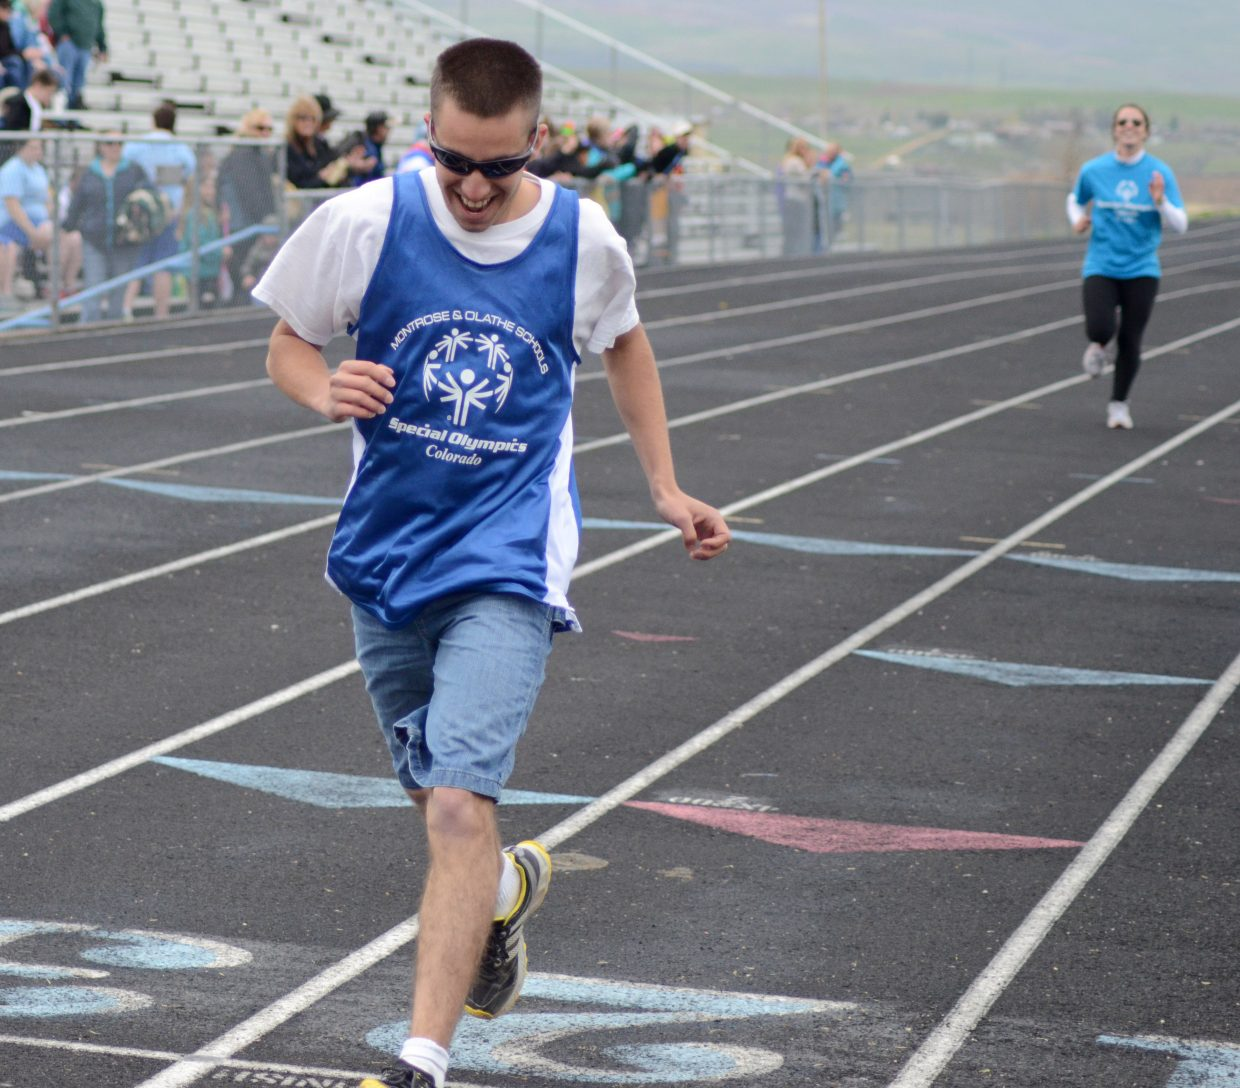 Jesse Middlebrook finishes his 400 meter dash strong Saturday in Craig.